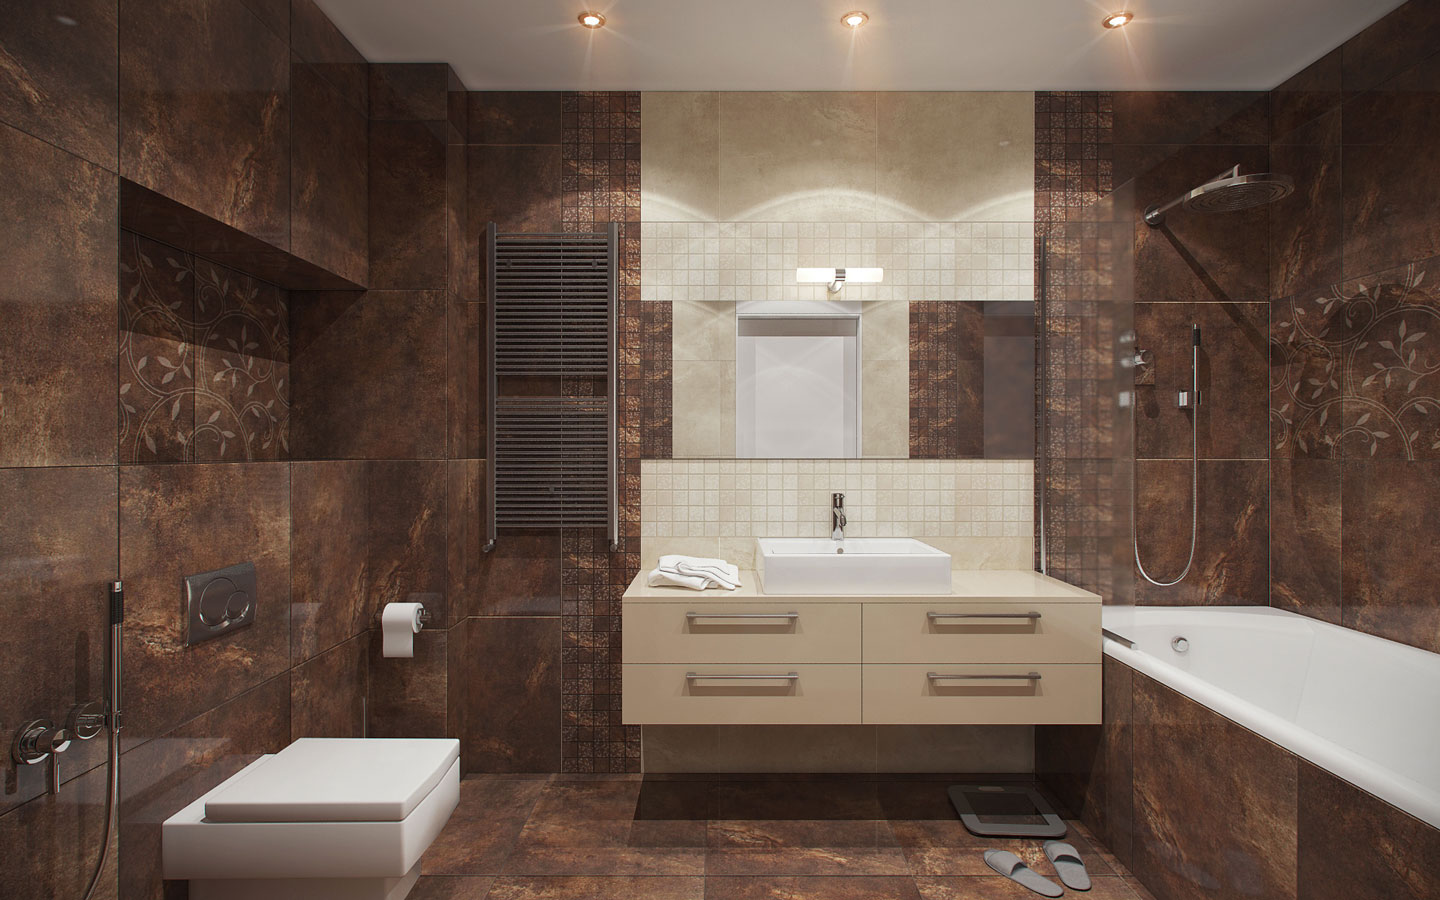 Brown And Cream Bathroom Theme - 5 ideas for a one bedroom apartment with study includes floor plans